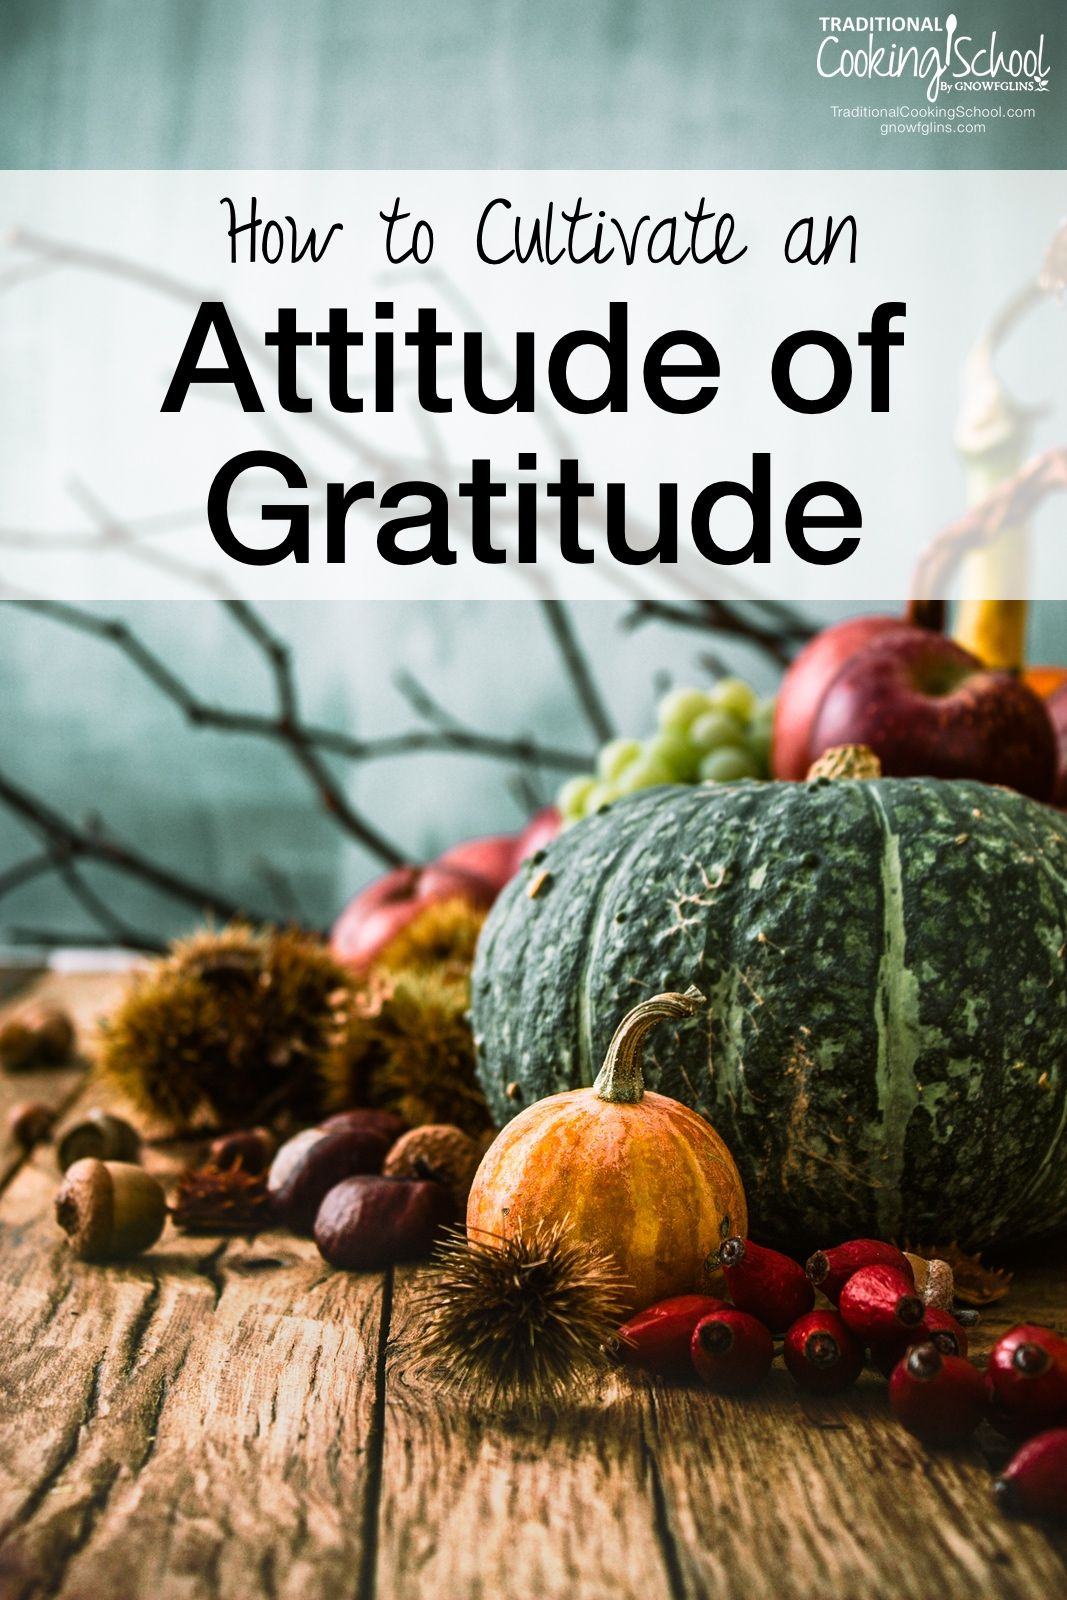 How to Cultivate an Attitude of Gratitude   Maintaining an attitude of gratefulness? That can be a challenge for anyone. Life isn't always easy, but we can always choose to be grateful, no matter what our circumstances. Here are four ways in which I'm working to maintain an attitude of gratitude during this Thanksgiving season.   TraditionalCookingSchool.com